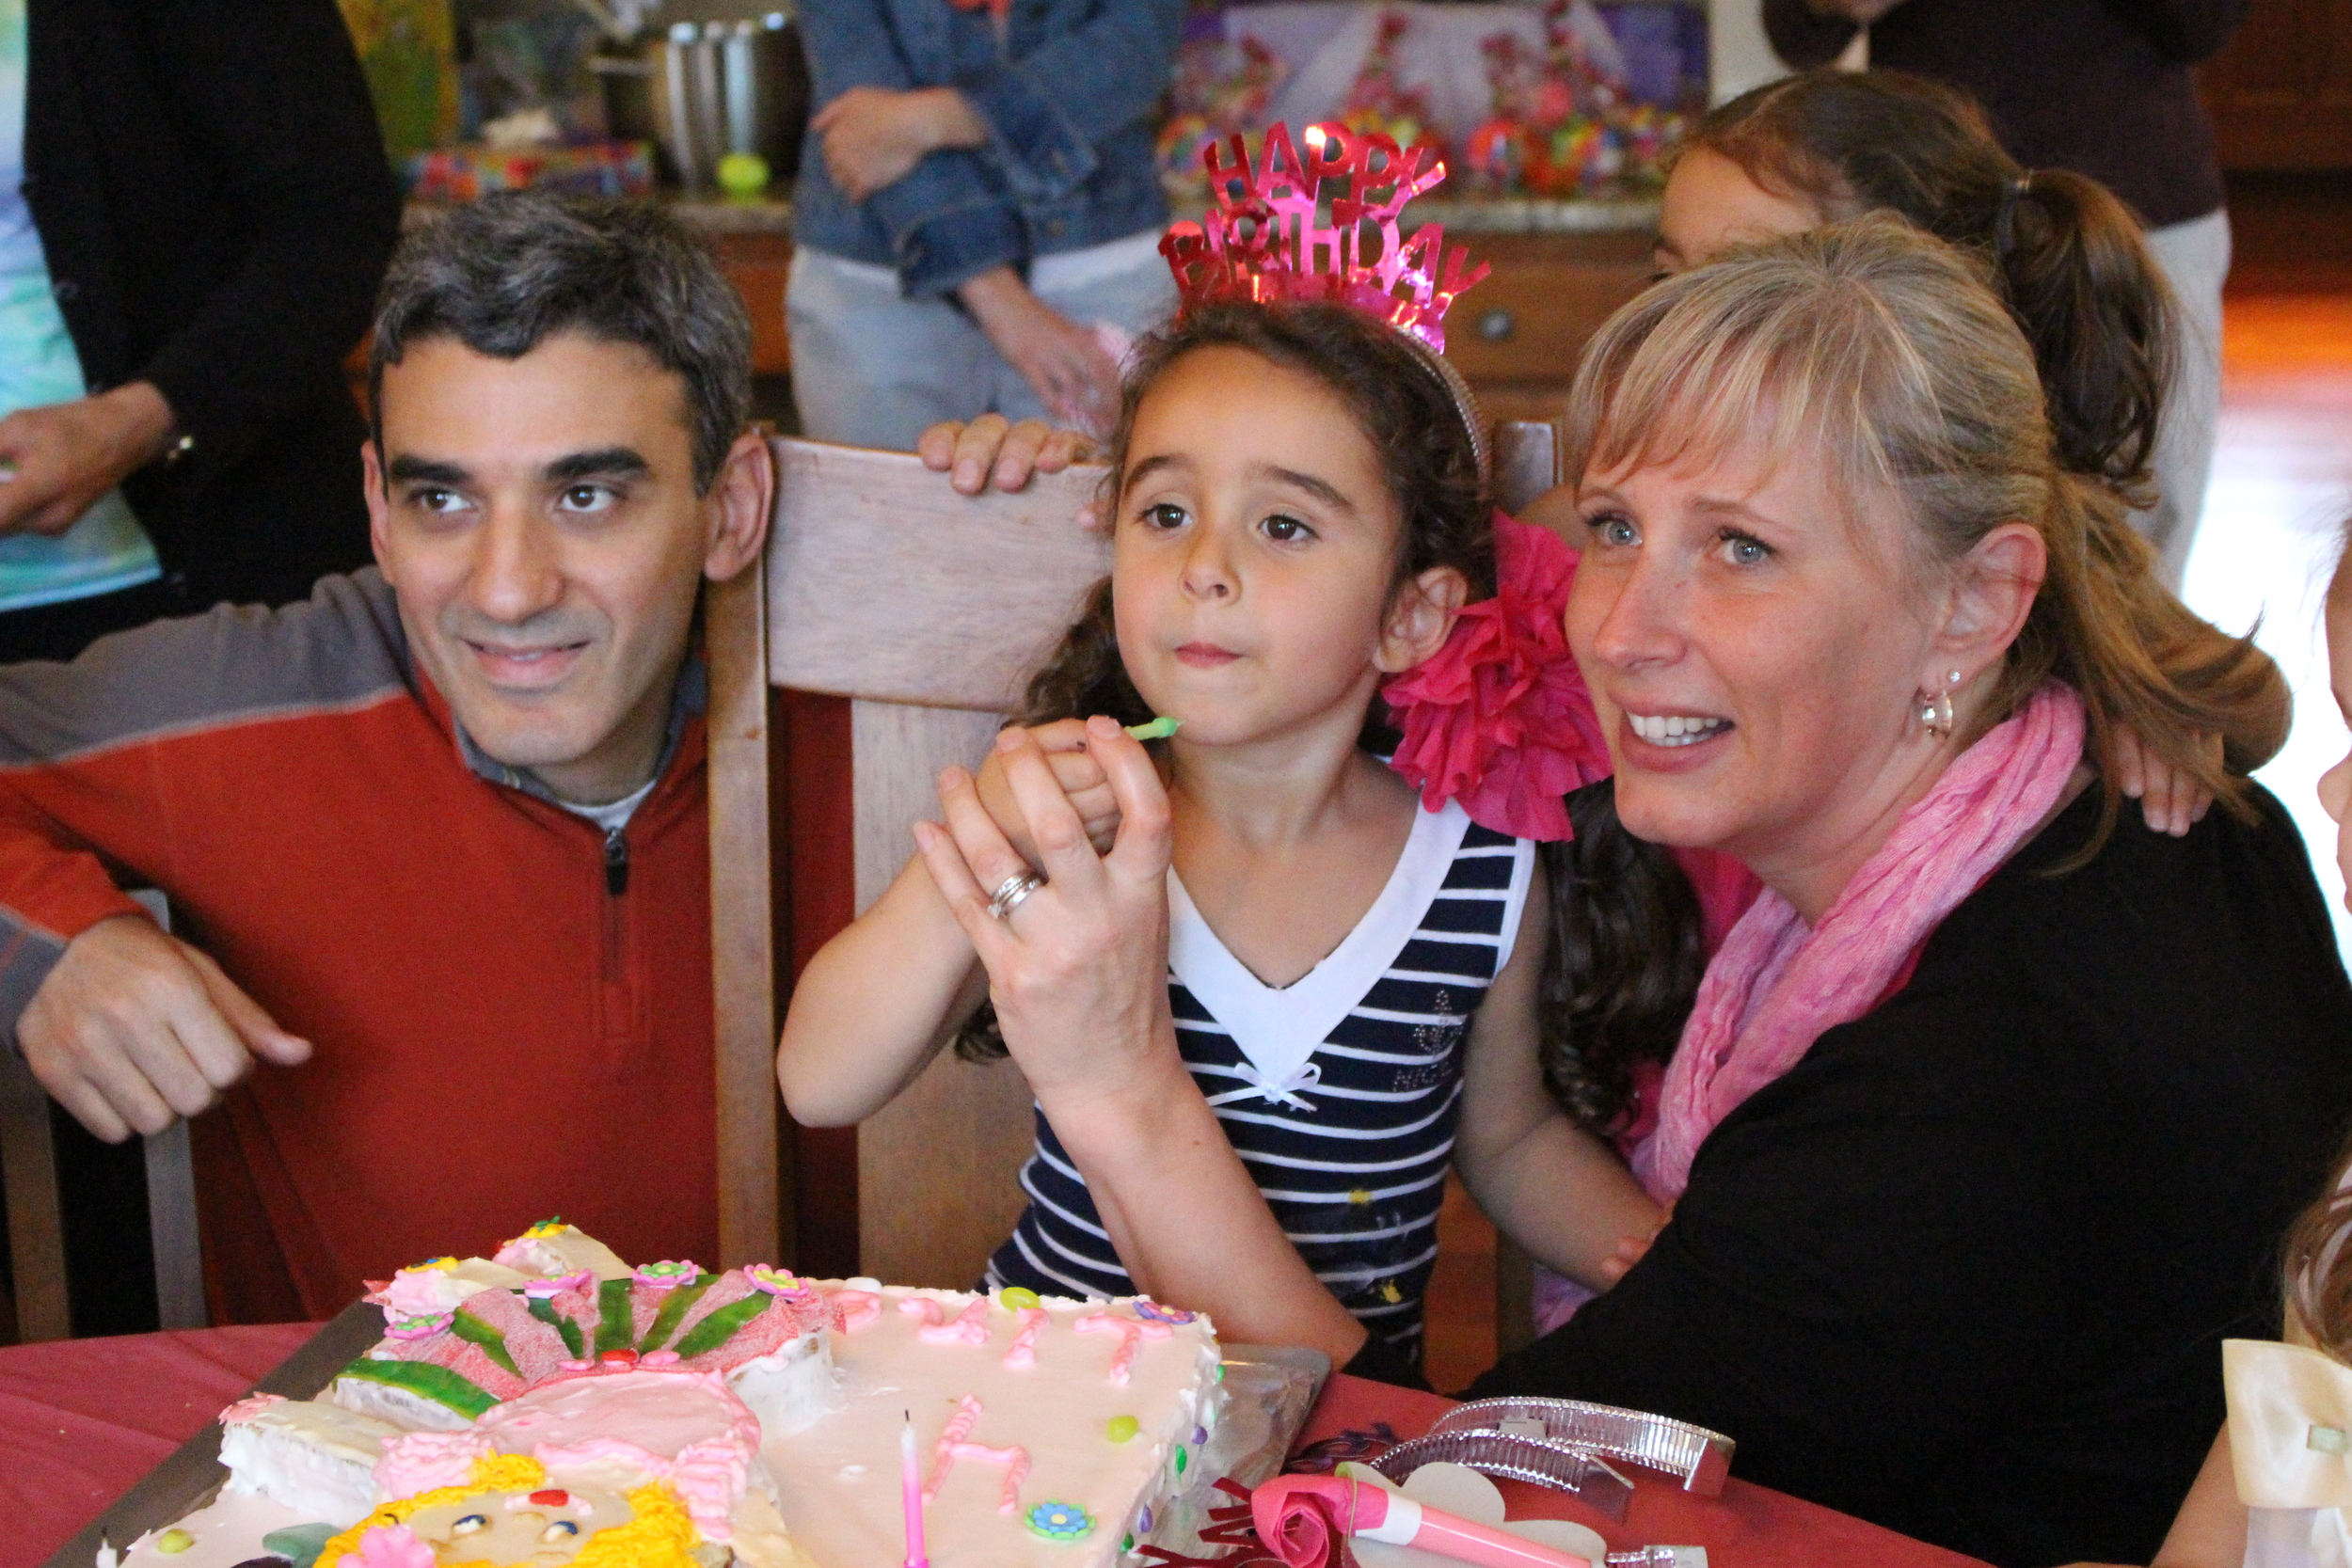 Ihab & Nicole celebrating their daughter's fourth birthday